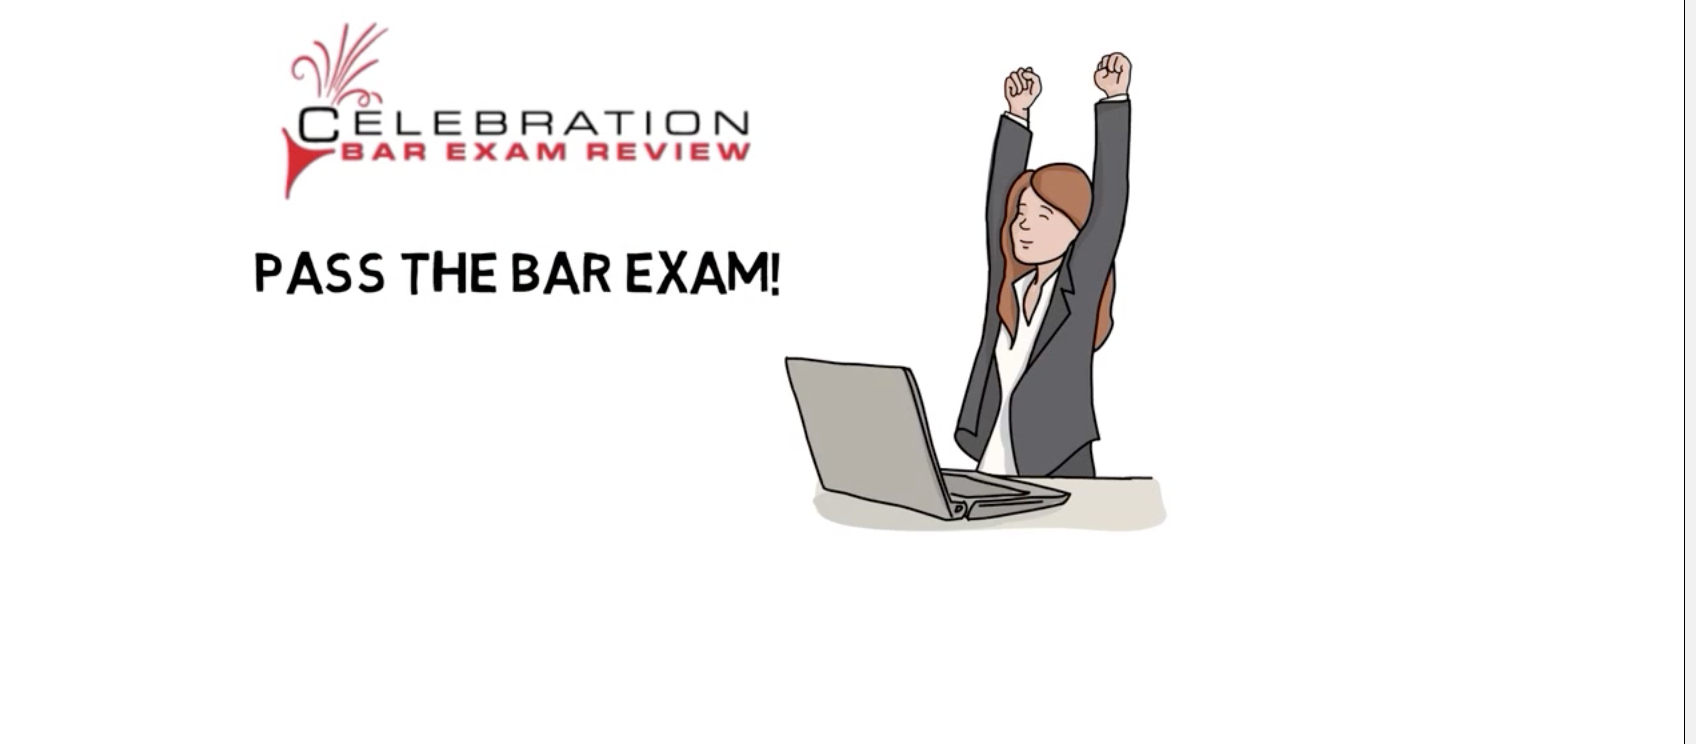 The 3 Indicators of Success for a Bar Exam Student